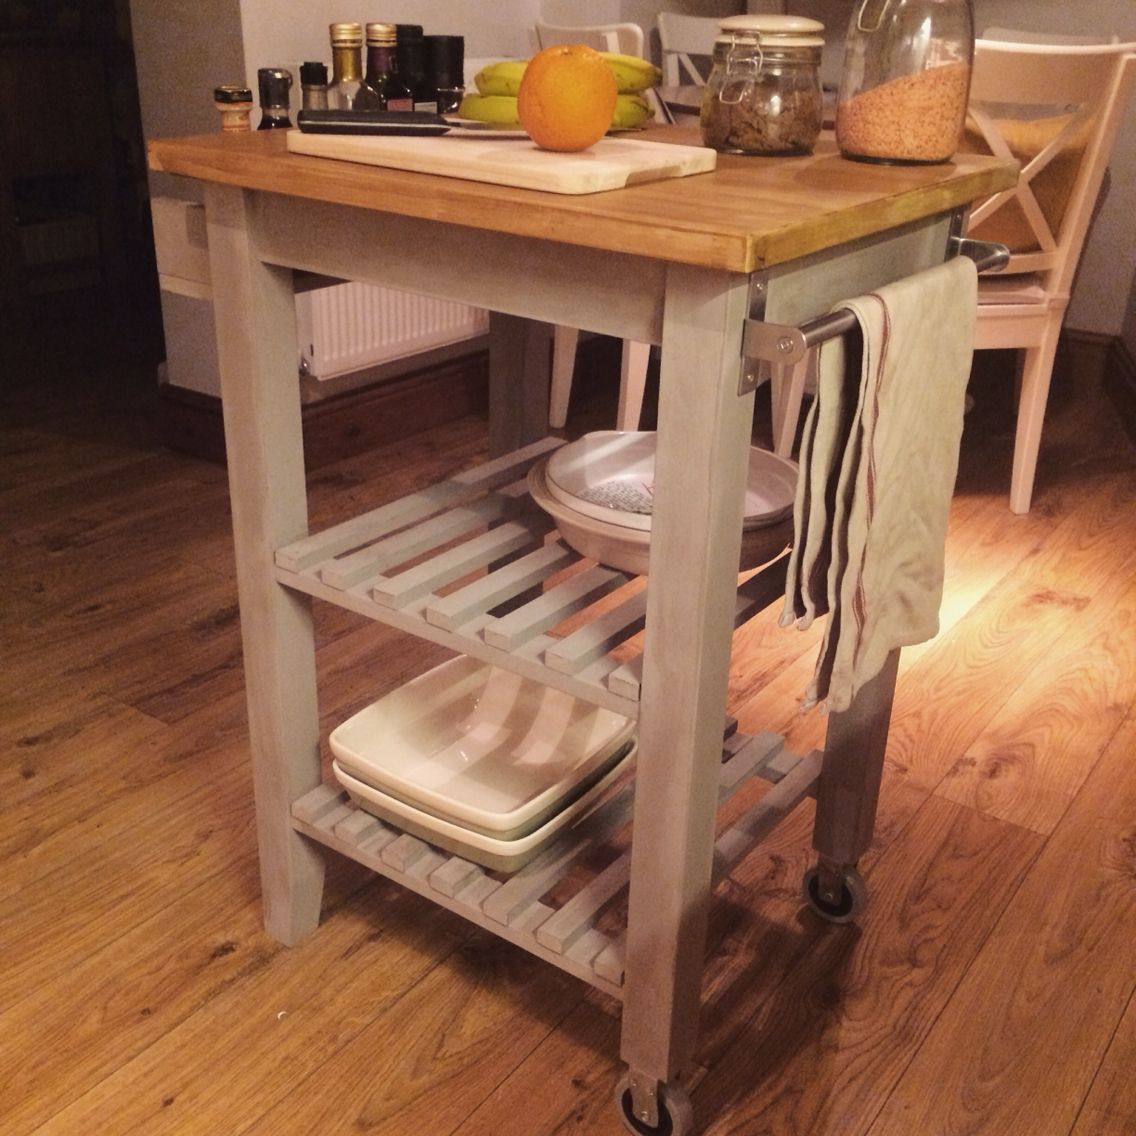 Bekvam Kitchen Cart Hack - something like this could work for yours ...